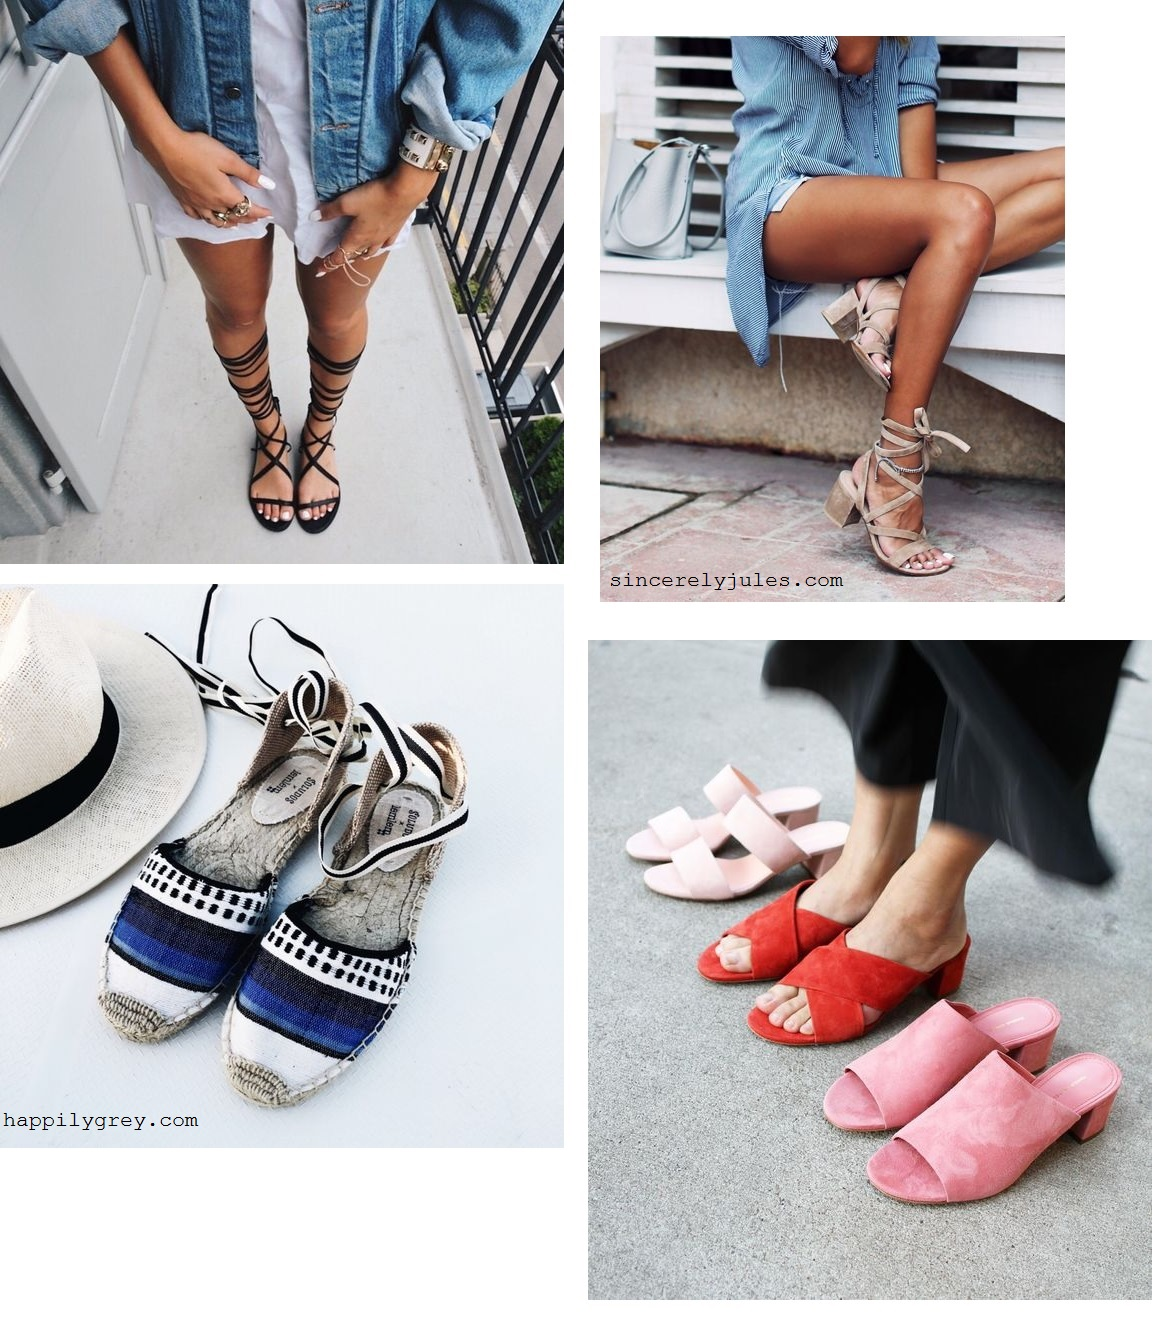 4. Summer vacation shoes 2016